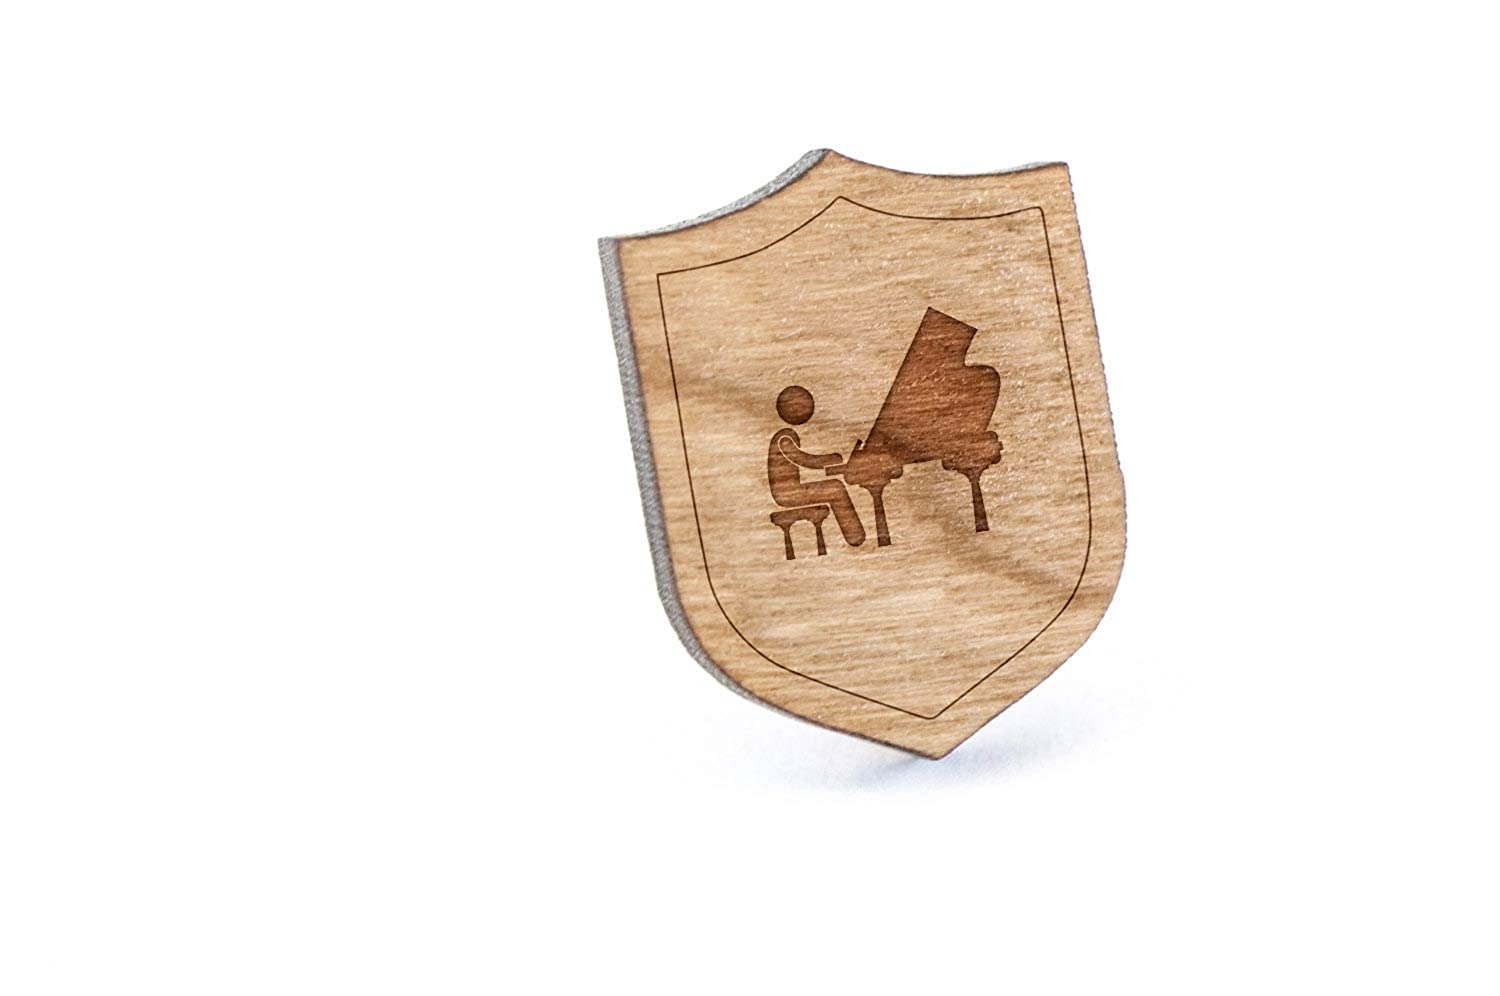 Pianist Lapel Pin, Wooden Pin And Tie Tack | Rustic And Minimalistic Groomsmen Gifts And Wedding Accessories on sale